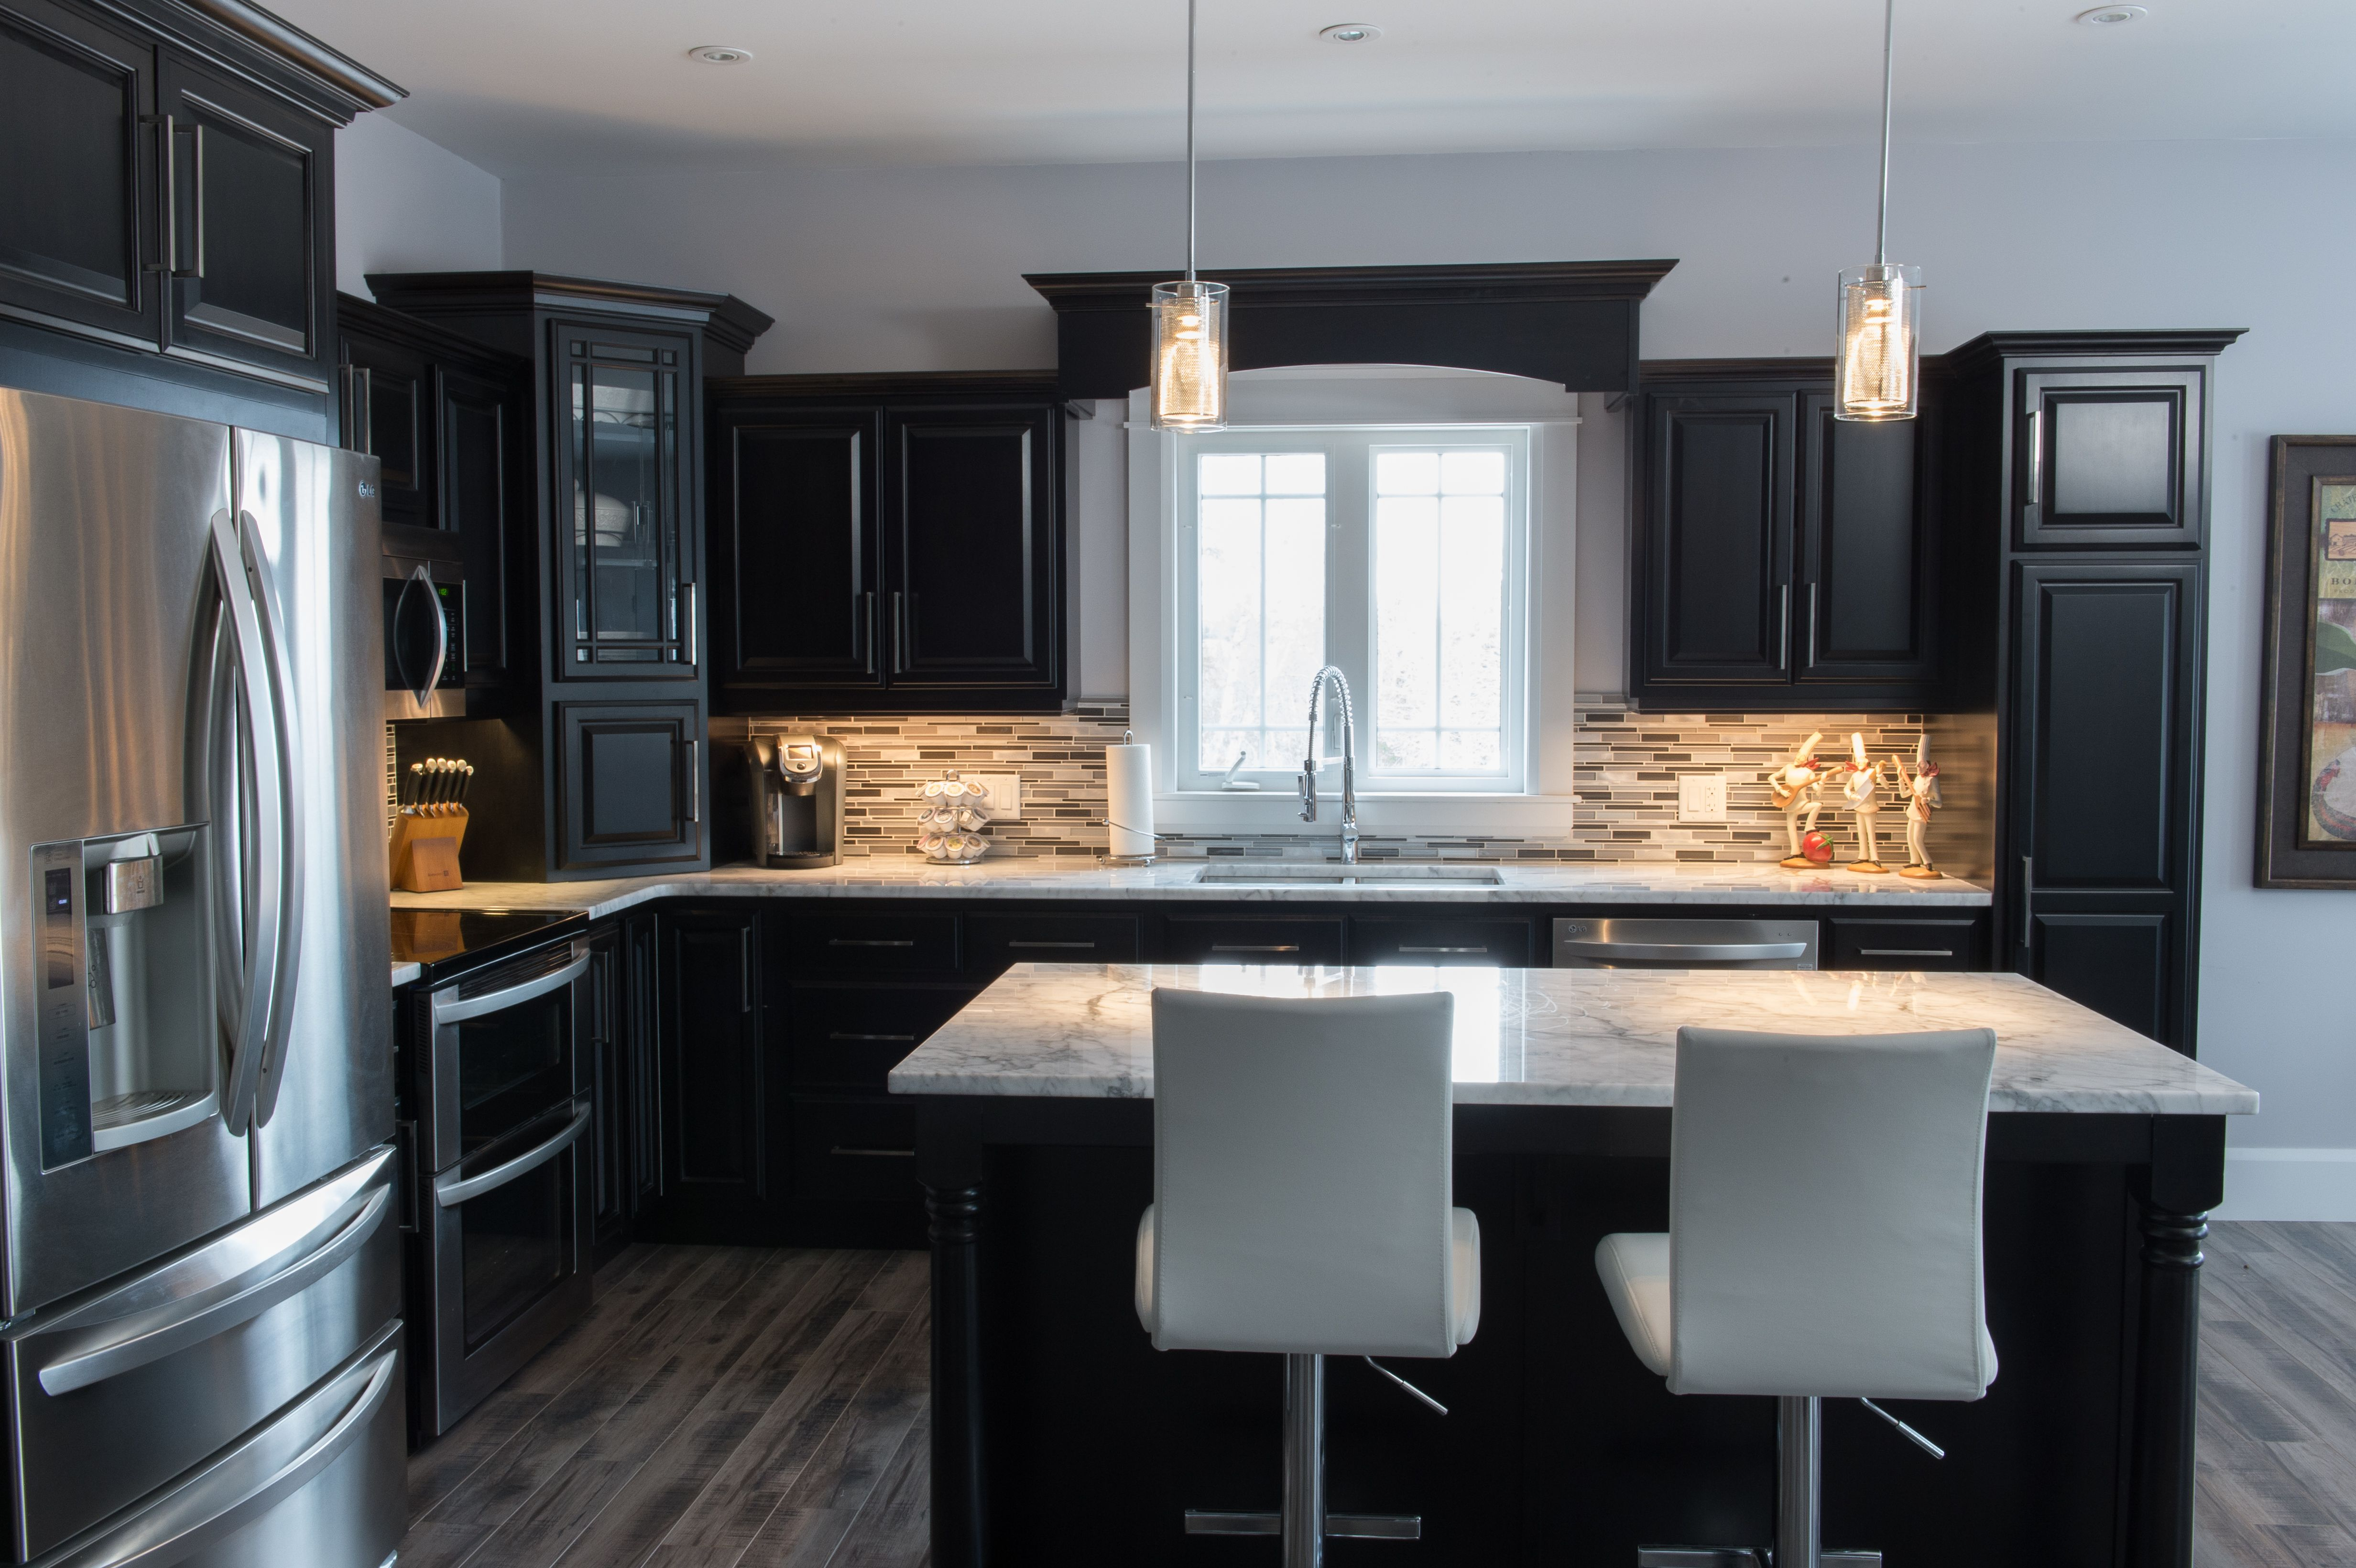 Custom Kitchen Cabinets Designed And Purchased From Hubcraft Timber Mart Come In See What We Custom Kitchen Cabinets Design Custom Kitchen Cabinets